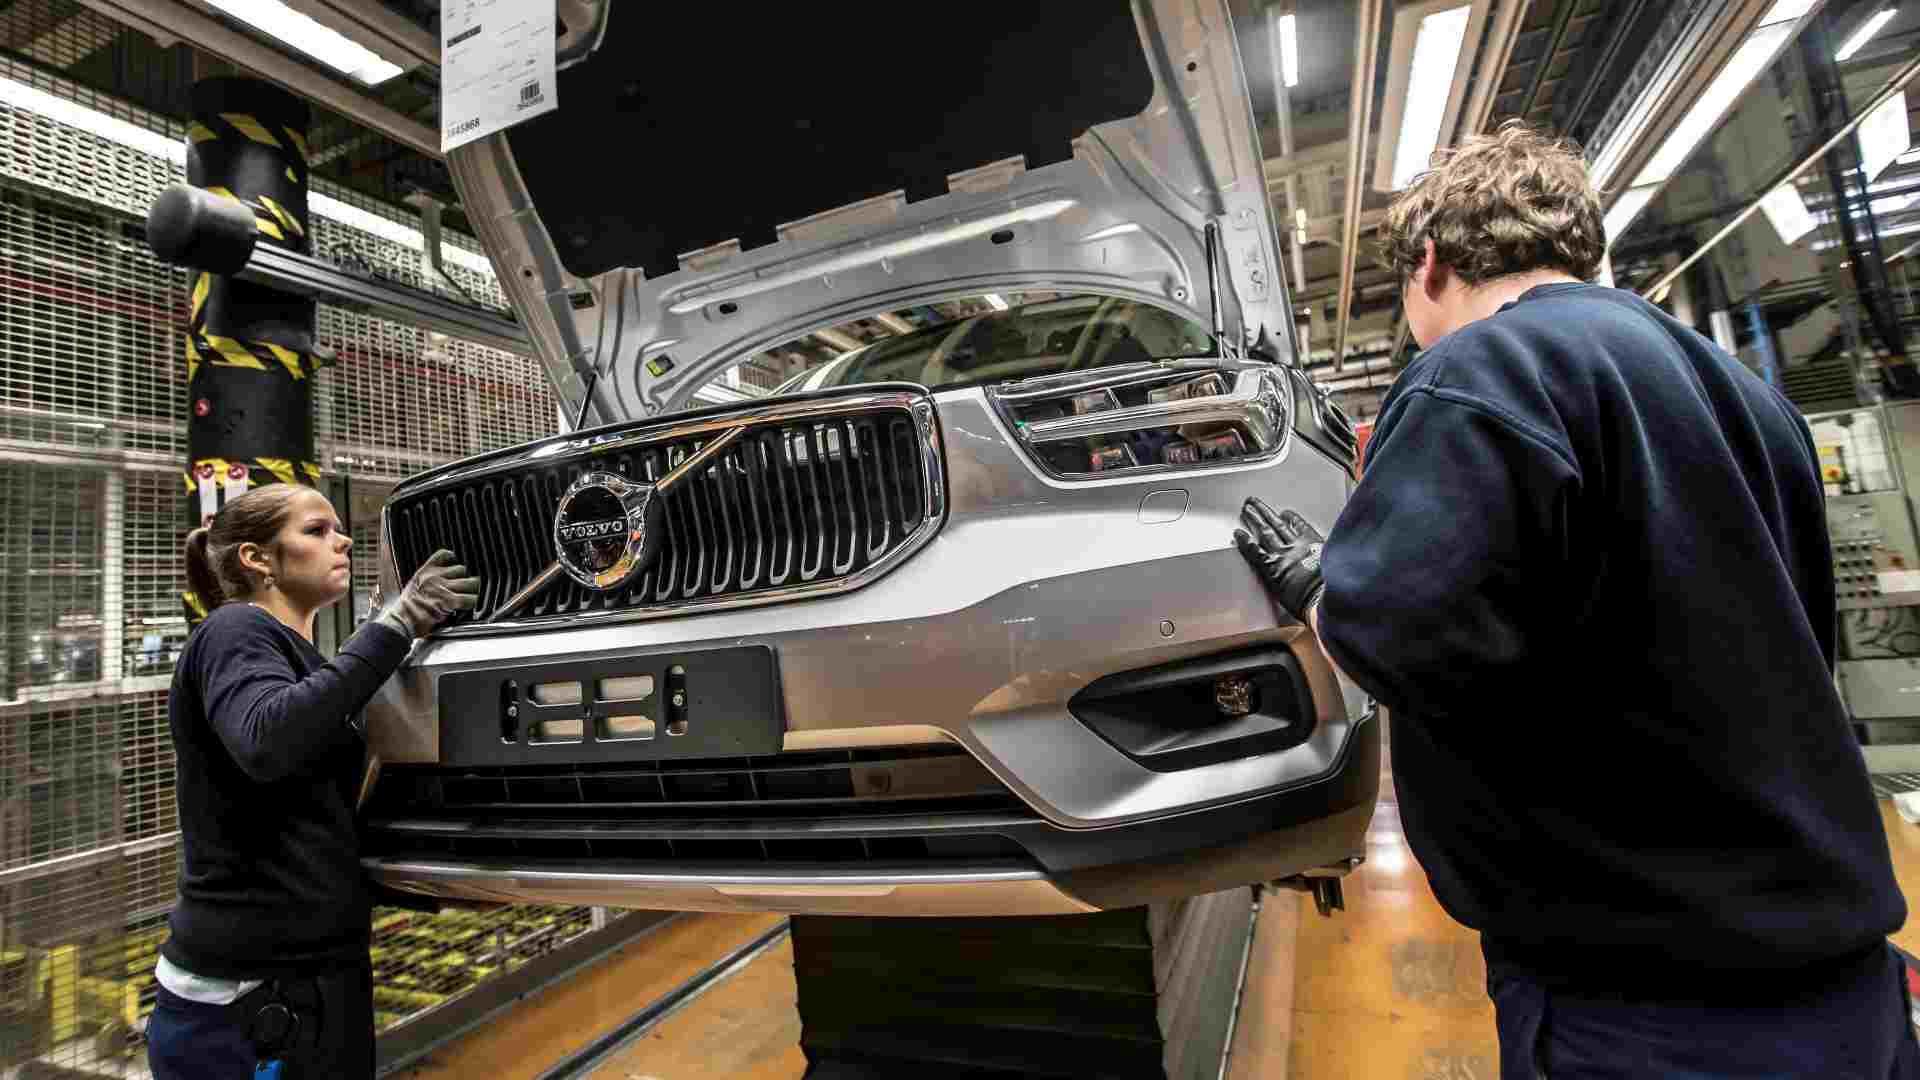 Volvo will replace any defective/damaged part free of cost under this initiative. Image: Volvo